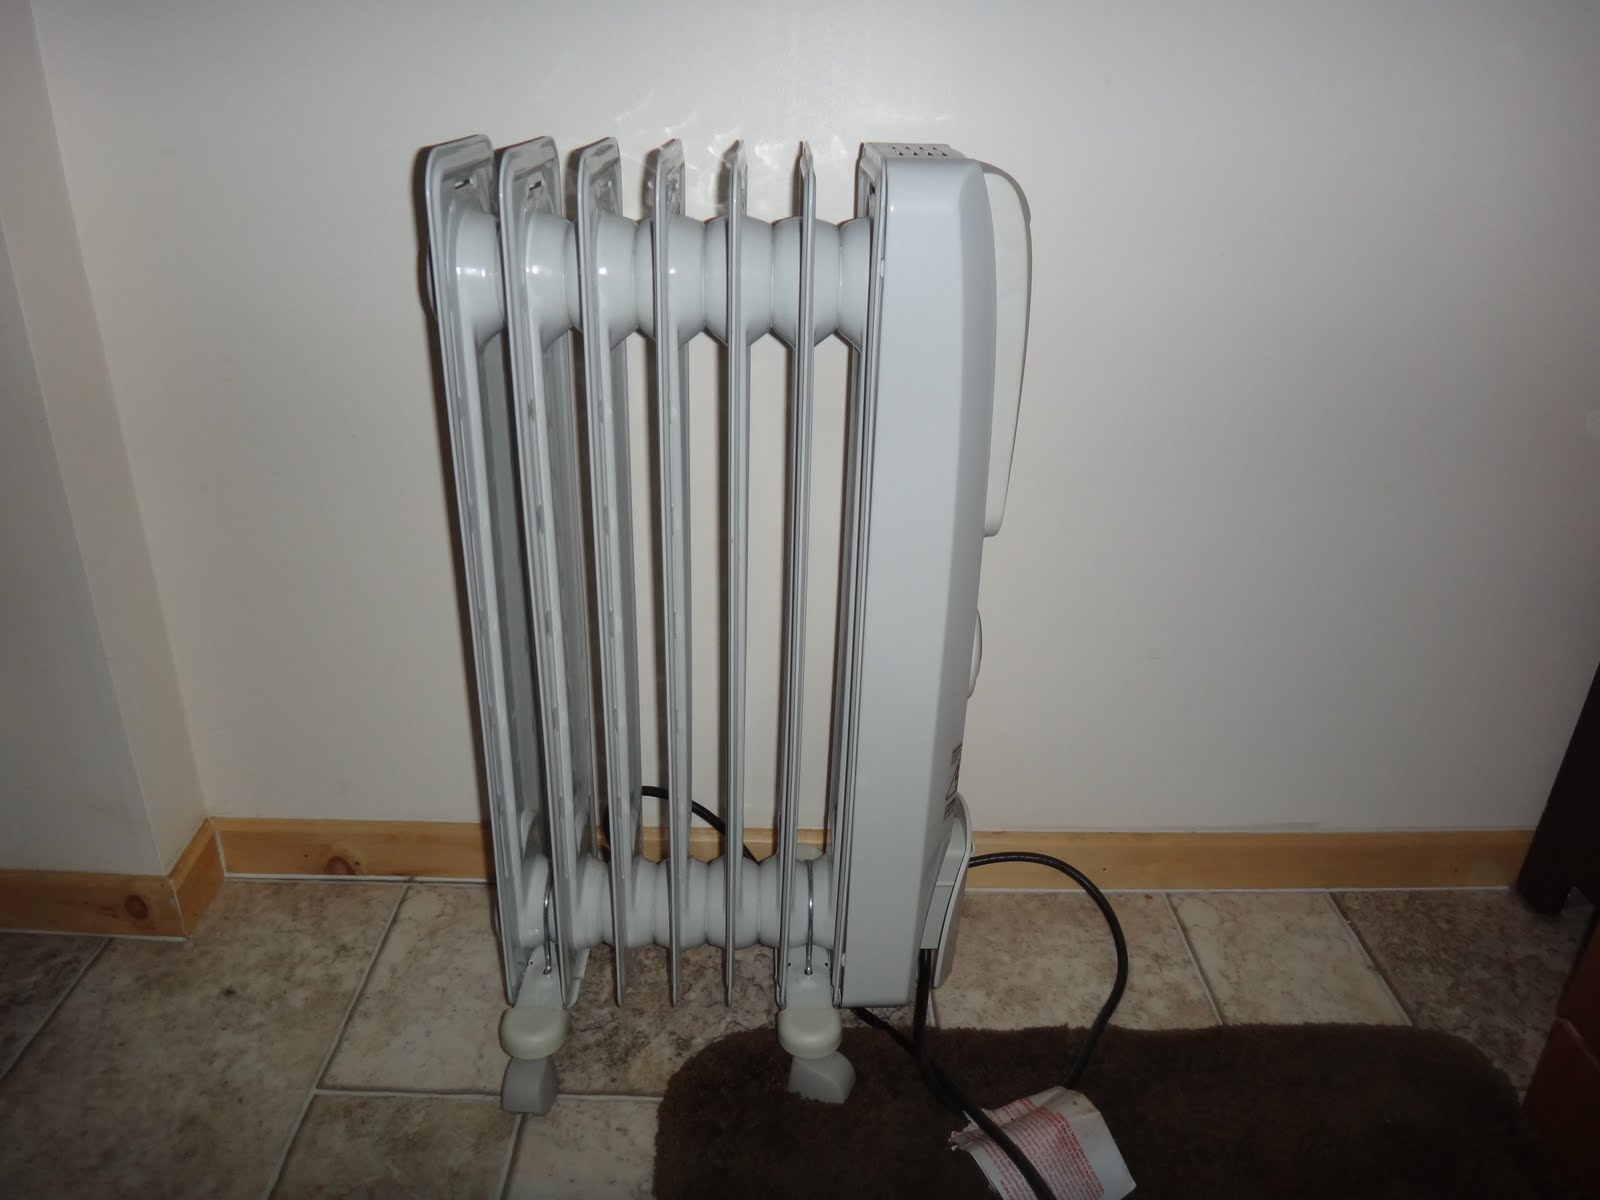 heater dimplex heaters pullcord fan bathroom room downflow shot